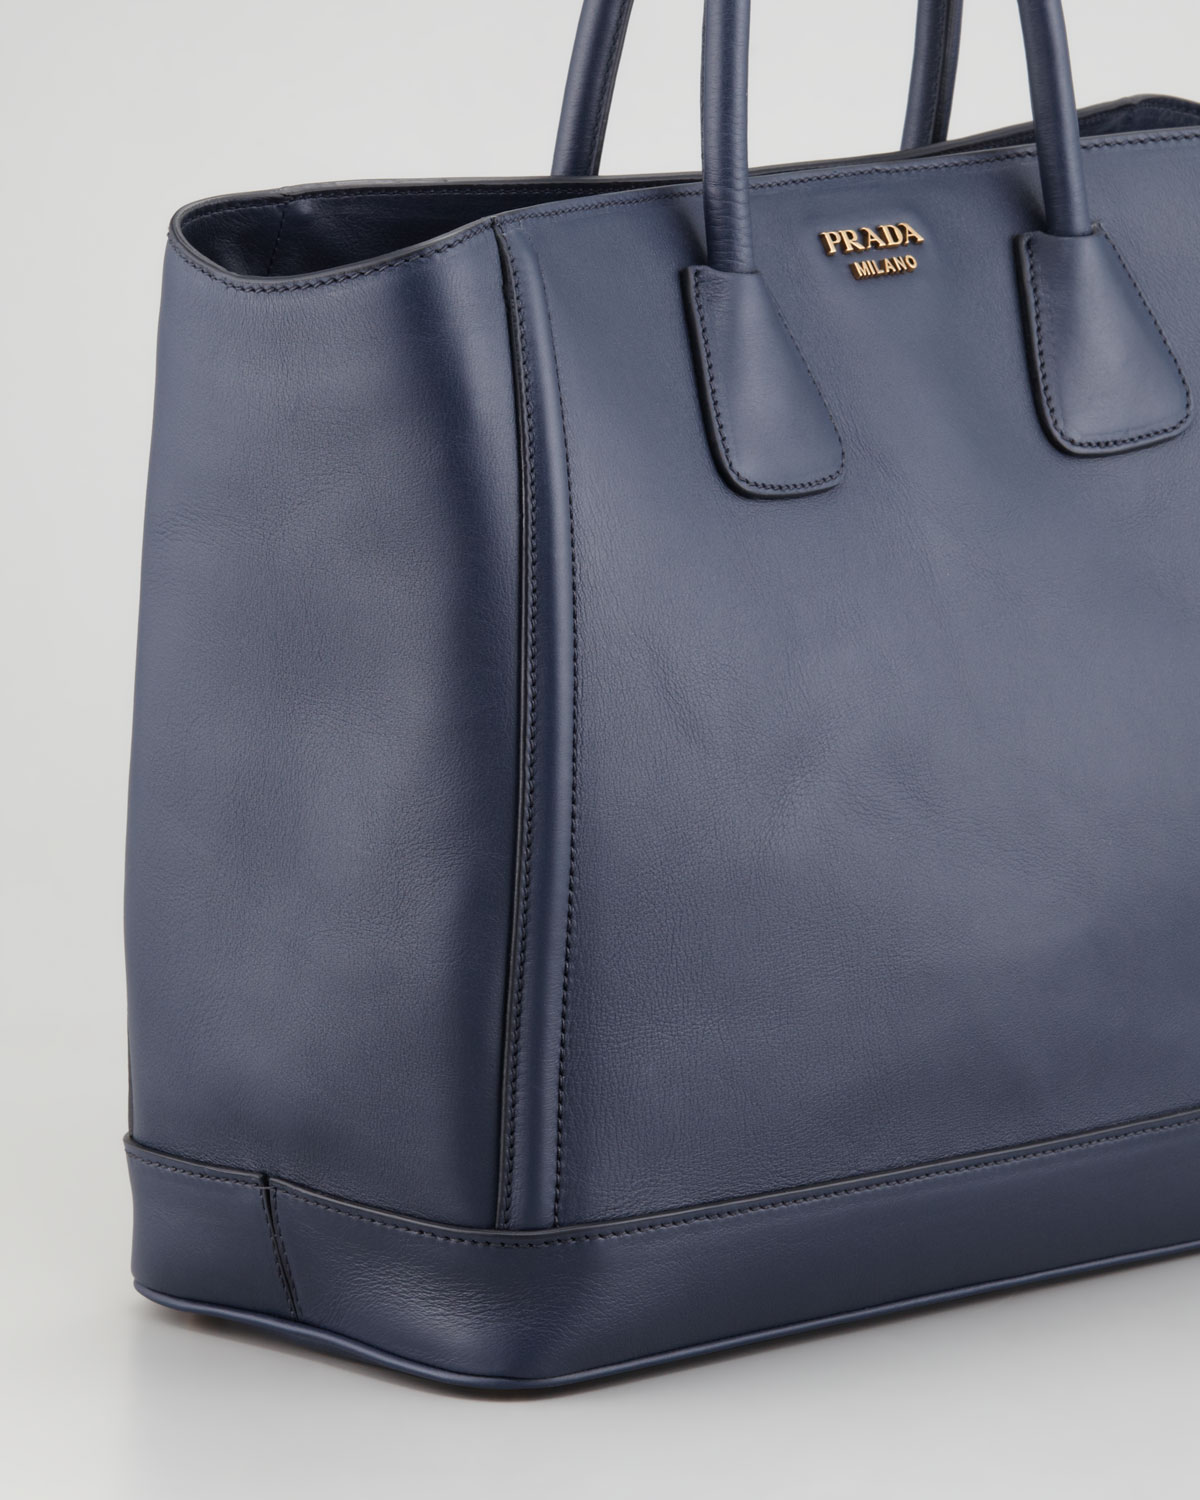 Prada City Calf Large Tote Bag in Blue | Lyst